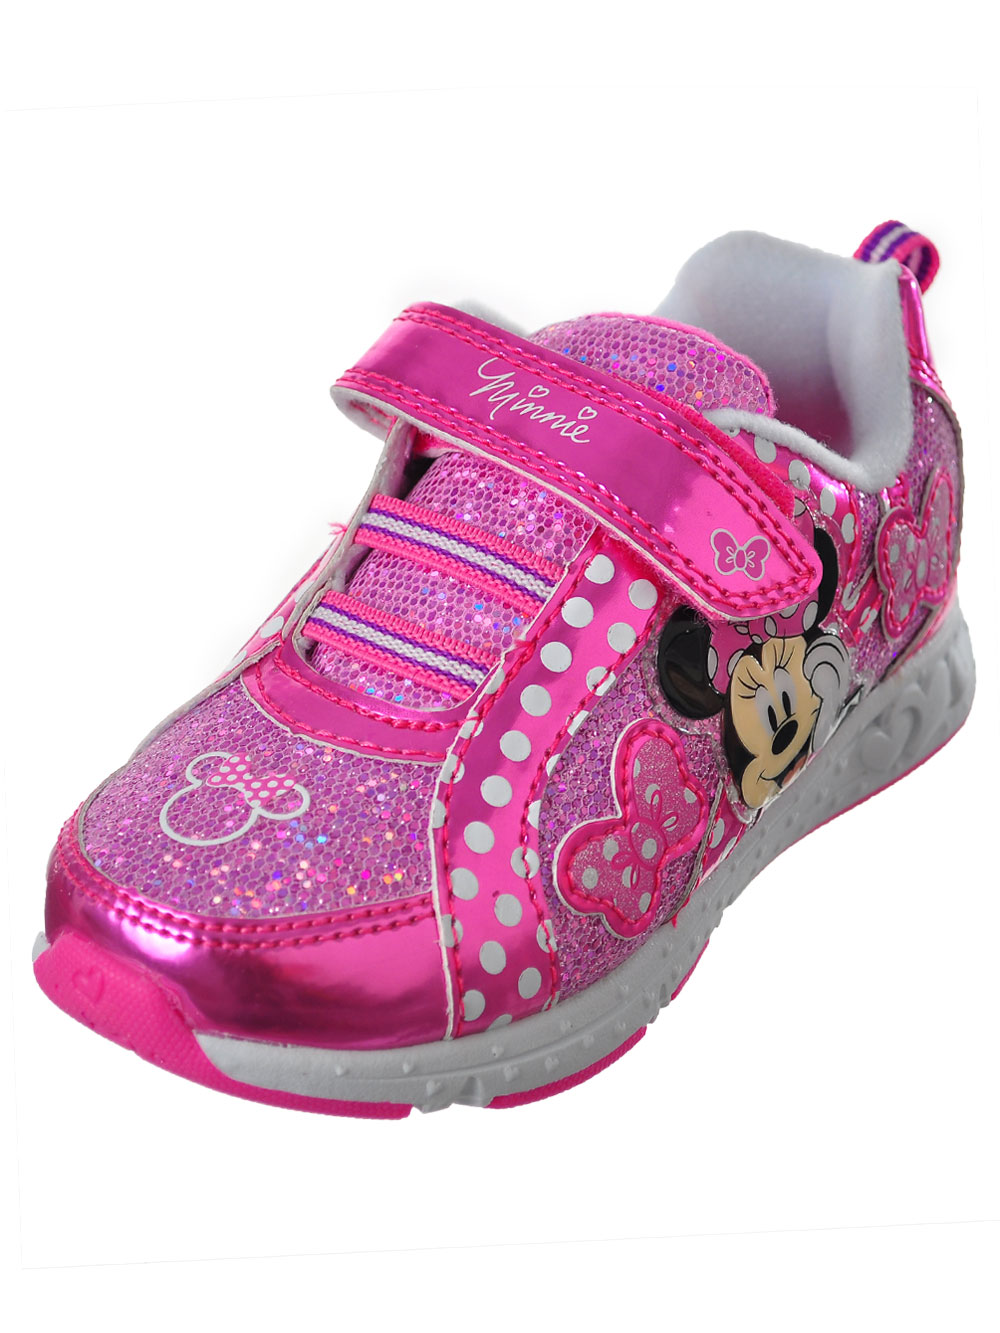 e8445ce36a2 Disney Minnie Mouse Girls  Light-Up Sneakers (Sizes 7 - 12)